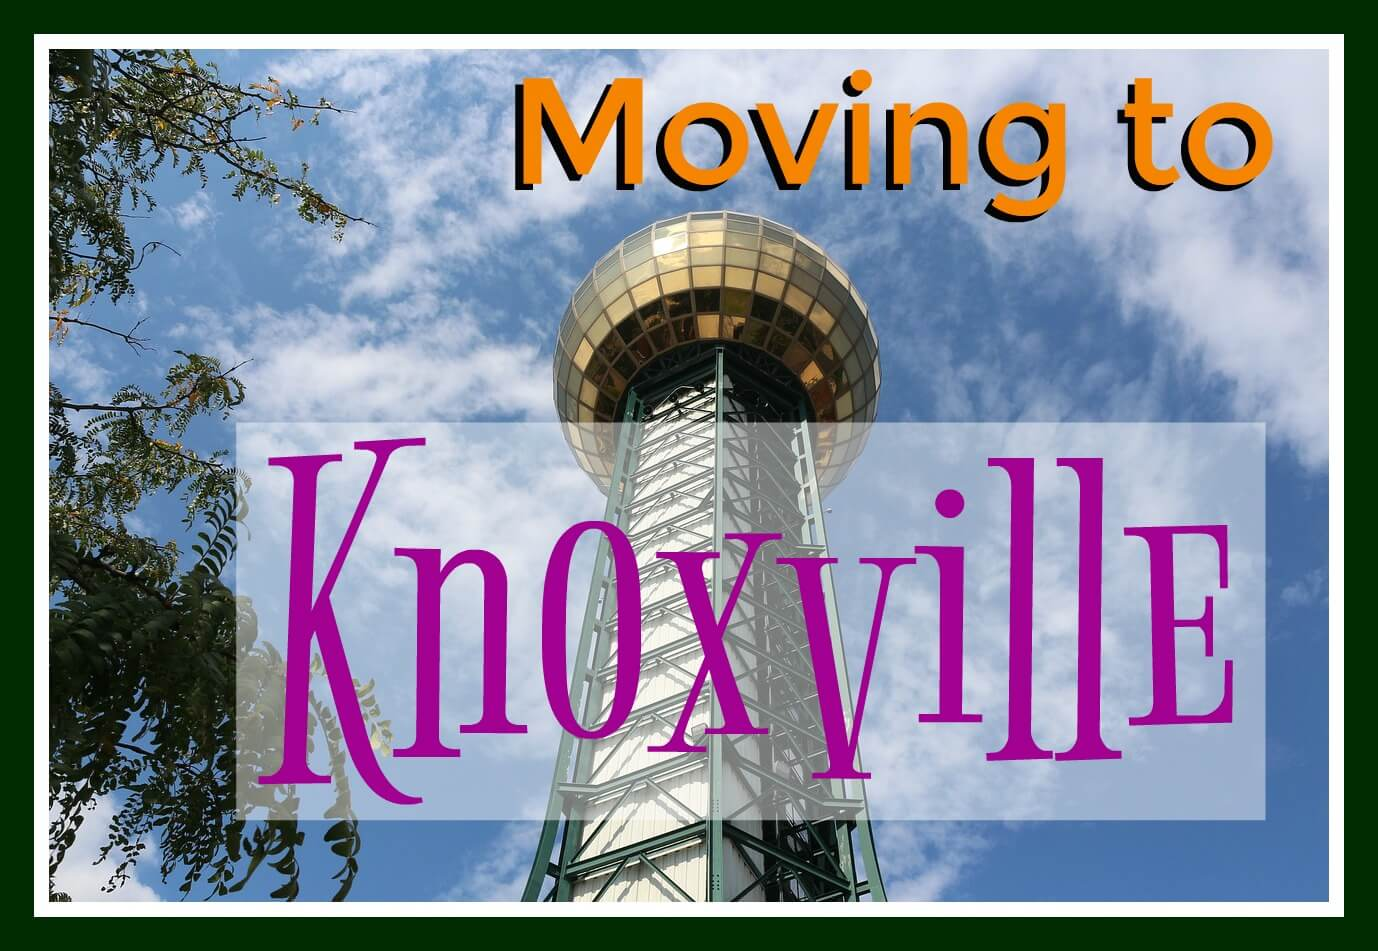 Moving to Knoxville? Find out everything The Marble City has to offer.